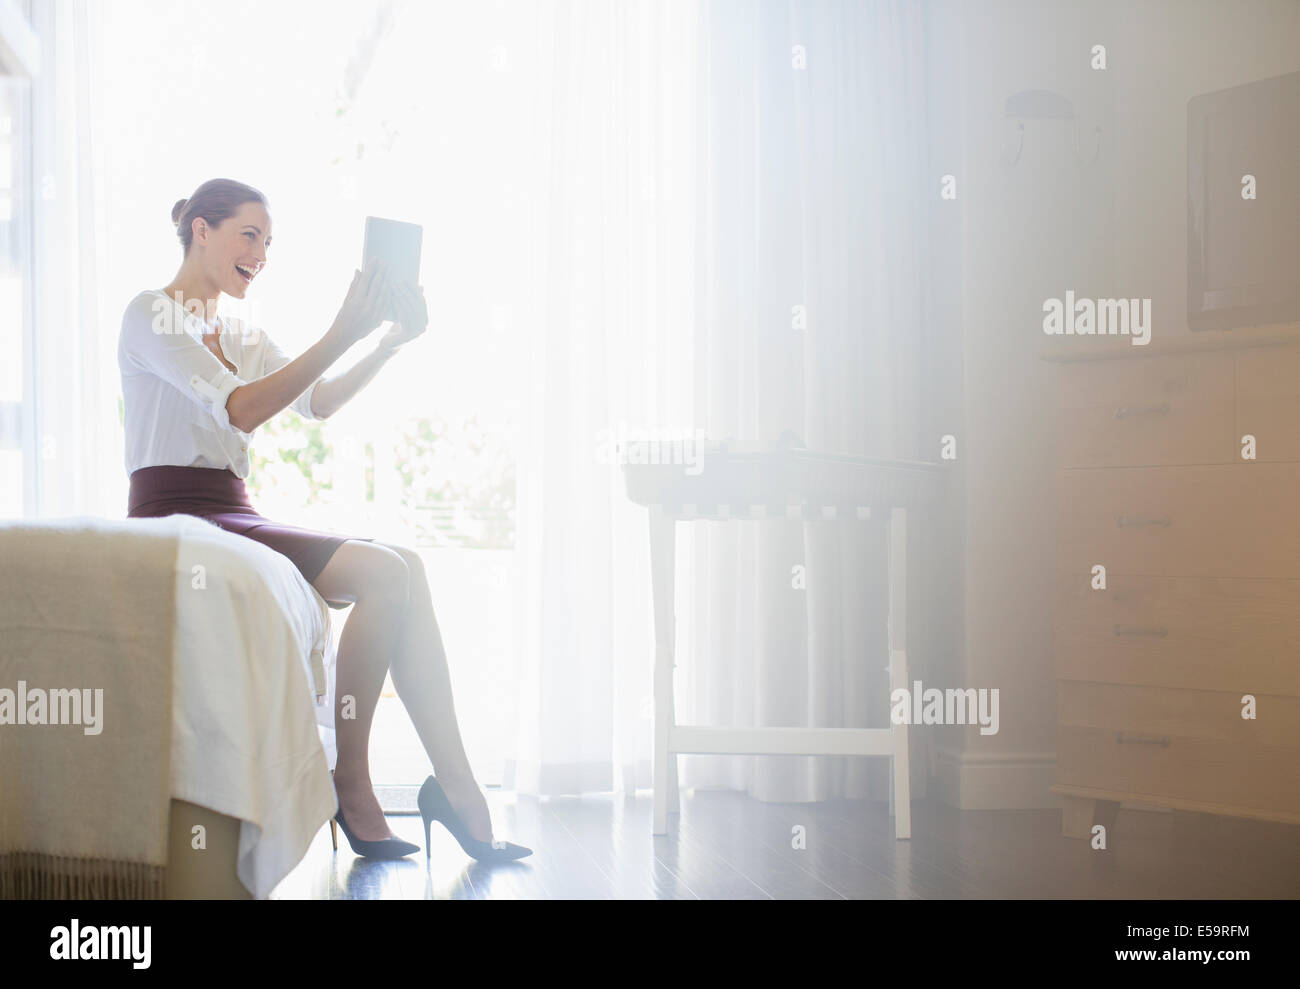 how to sell hotel rooms online